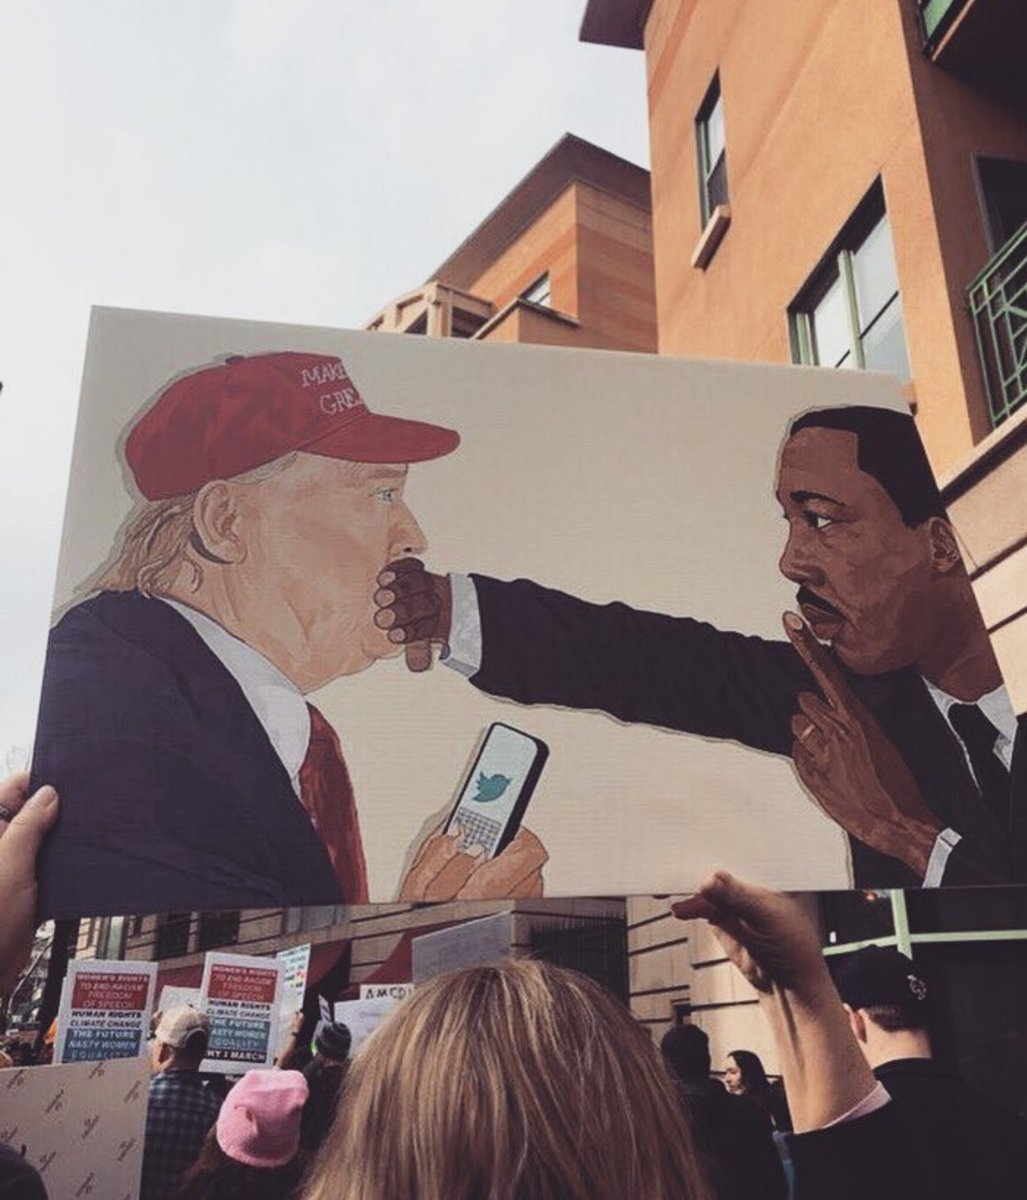 Terrific picture of ME! The other guy is Martin Luther King Jr. He is a great friend of mine which PROVES I am NOT a racist!! #SundayMorning <br>http://pic.twitter.com/70jSeRUzDb